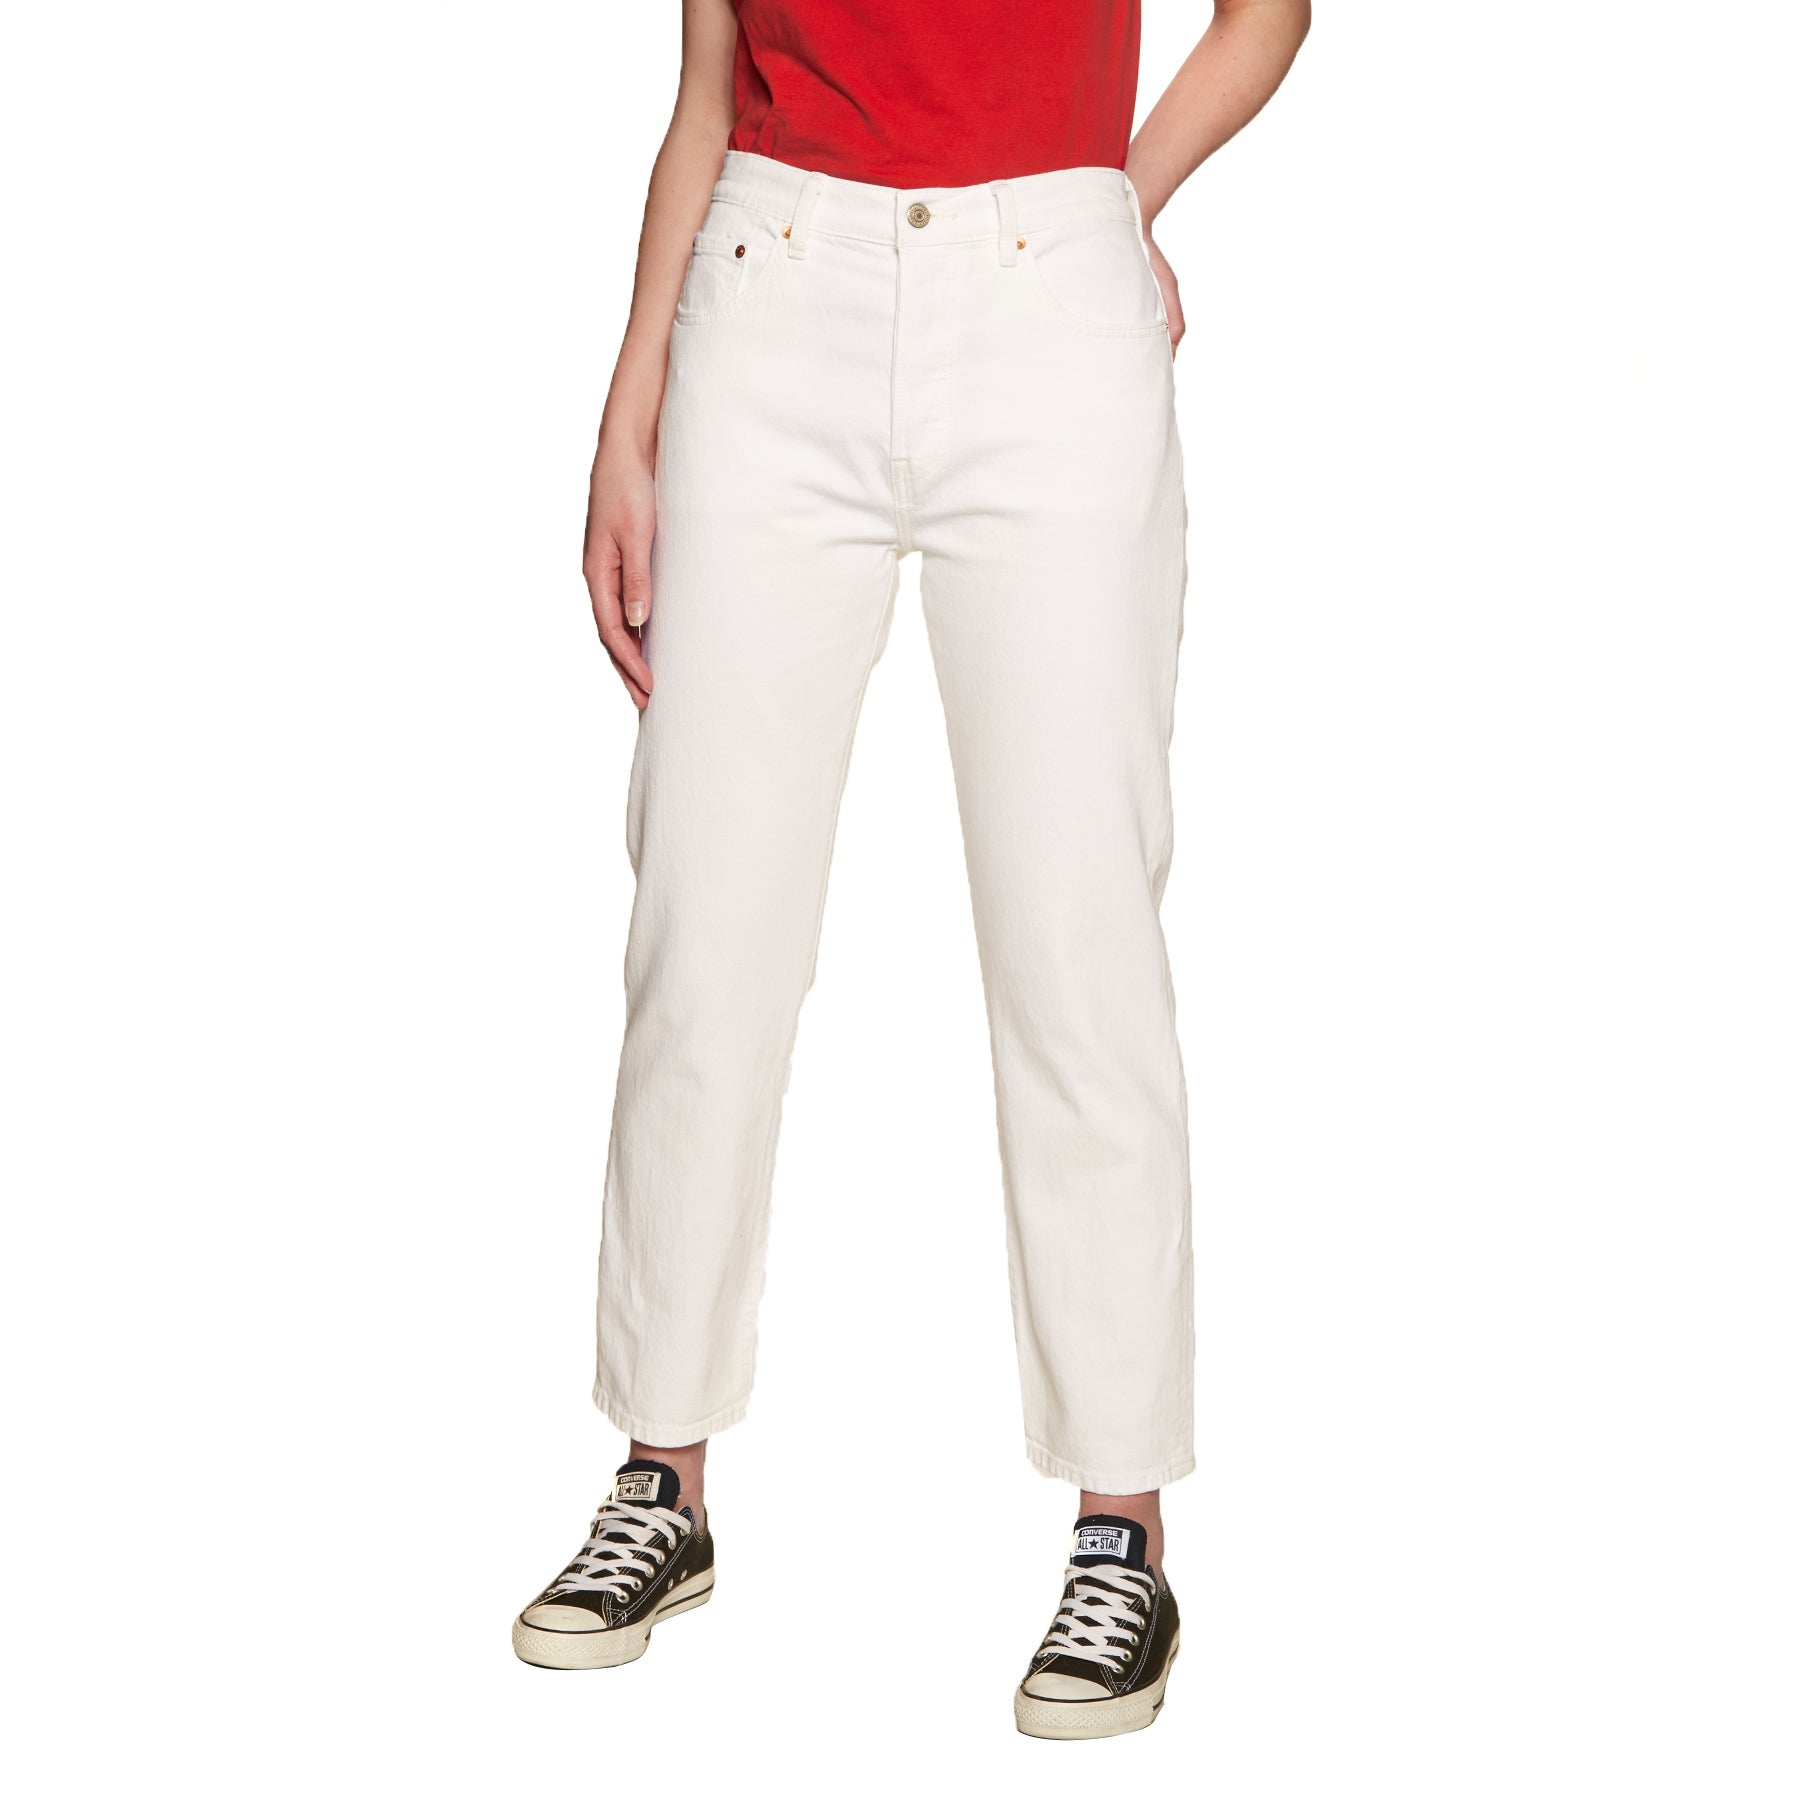 Jeans Femme Levis 501 Crop - In The Clouds